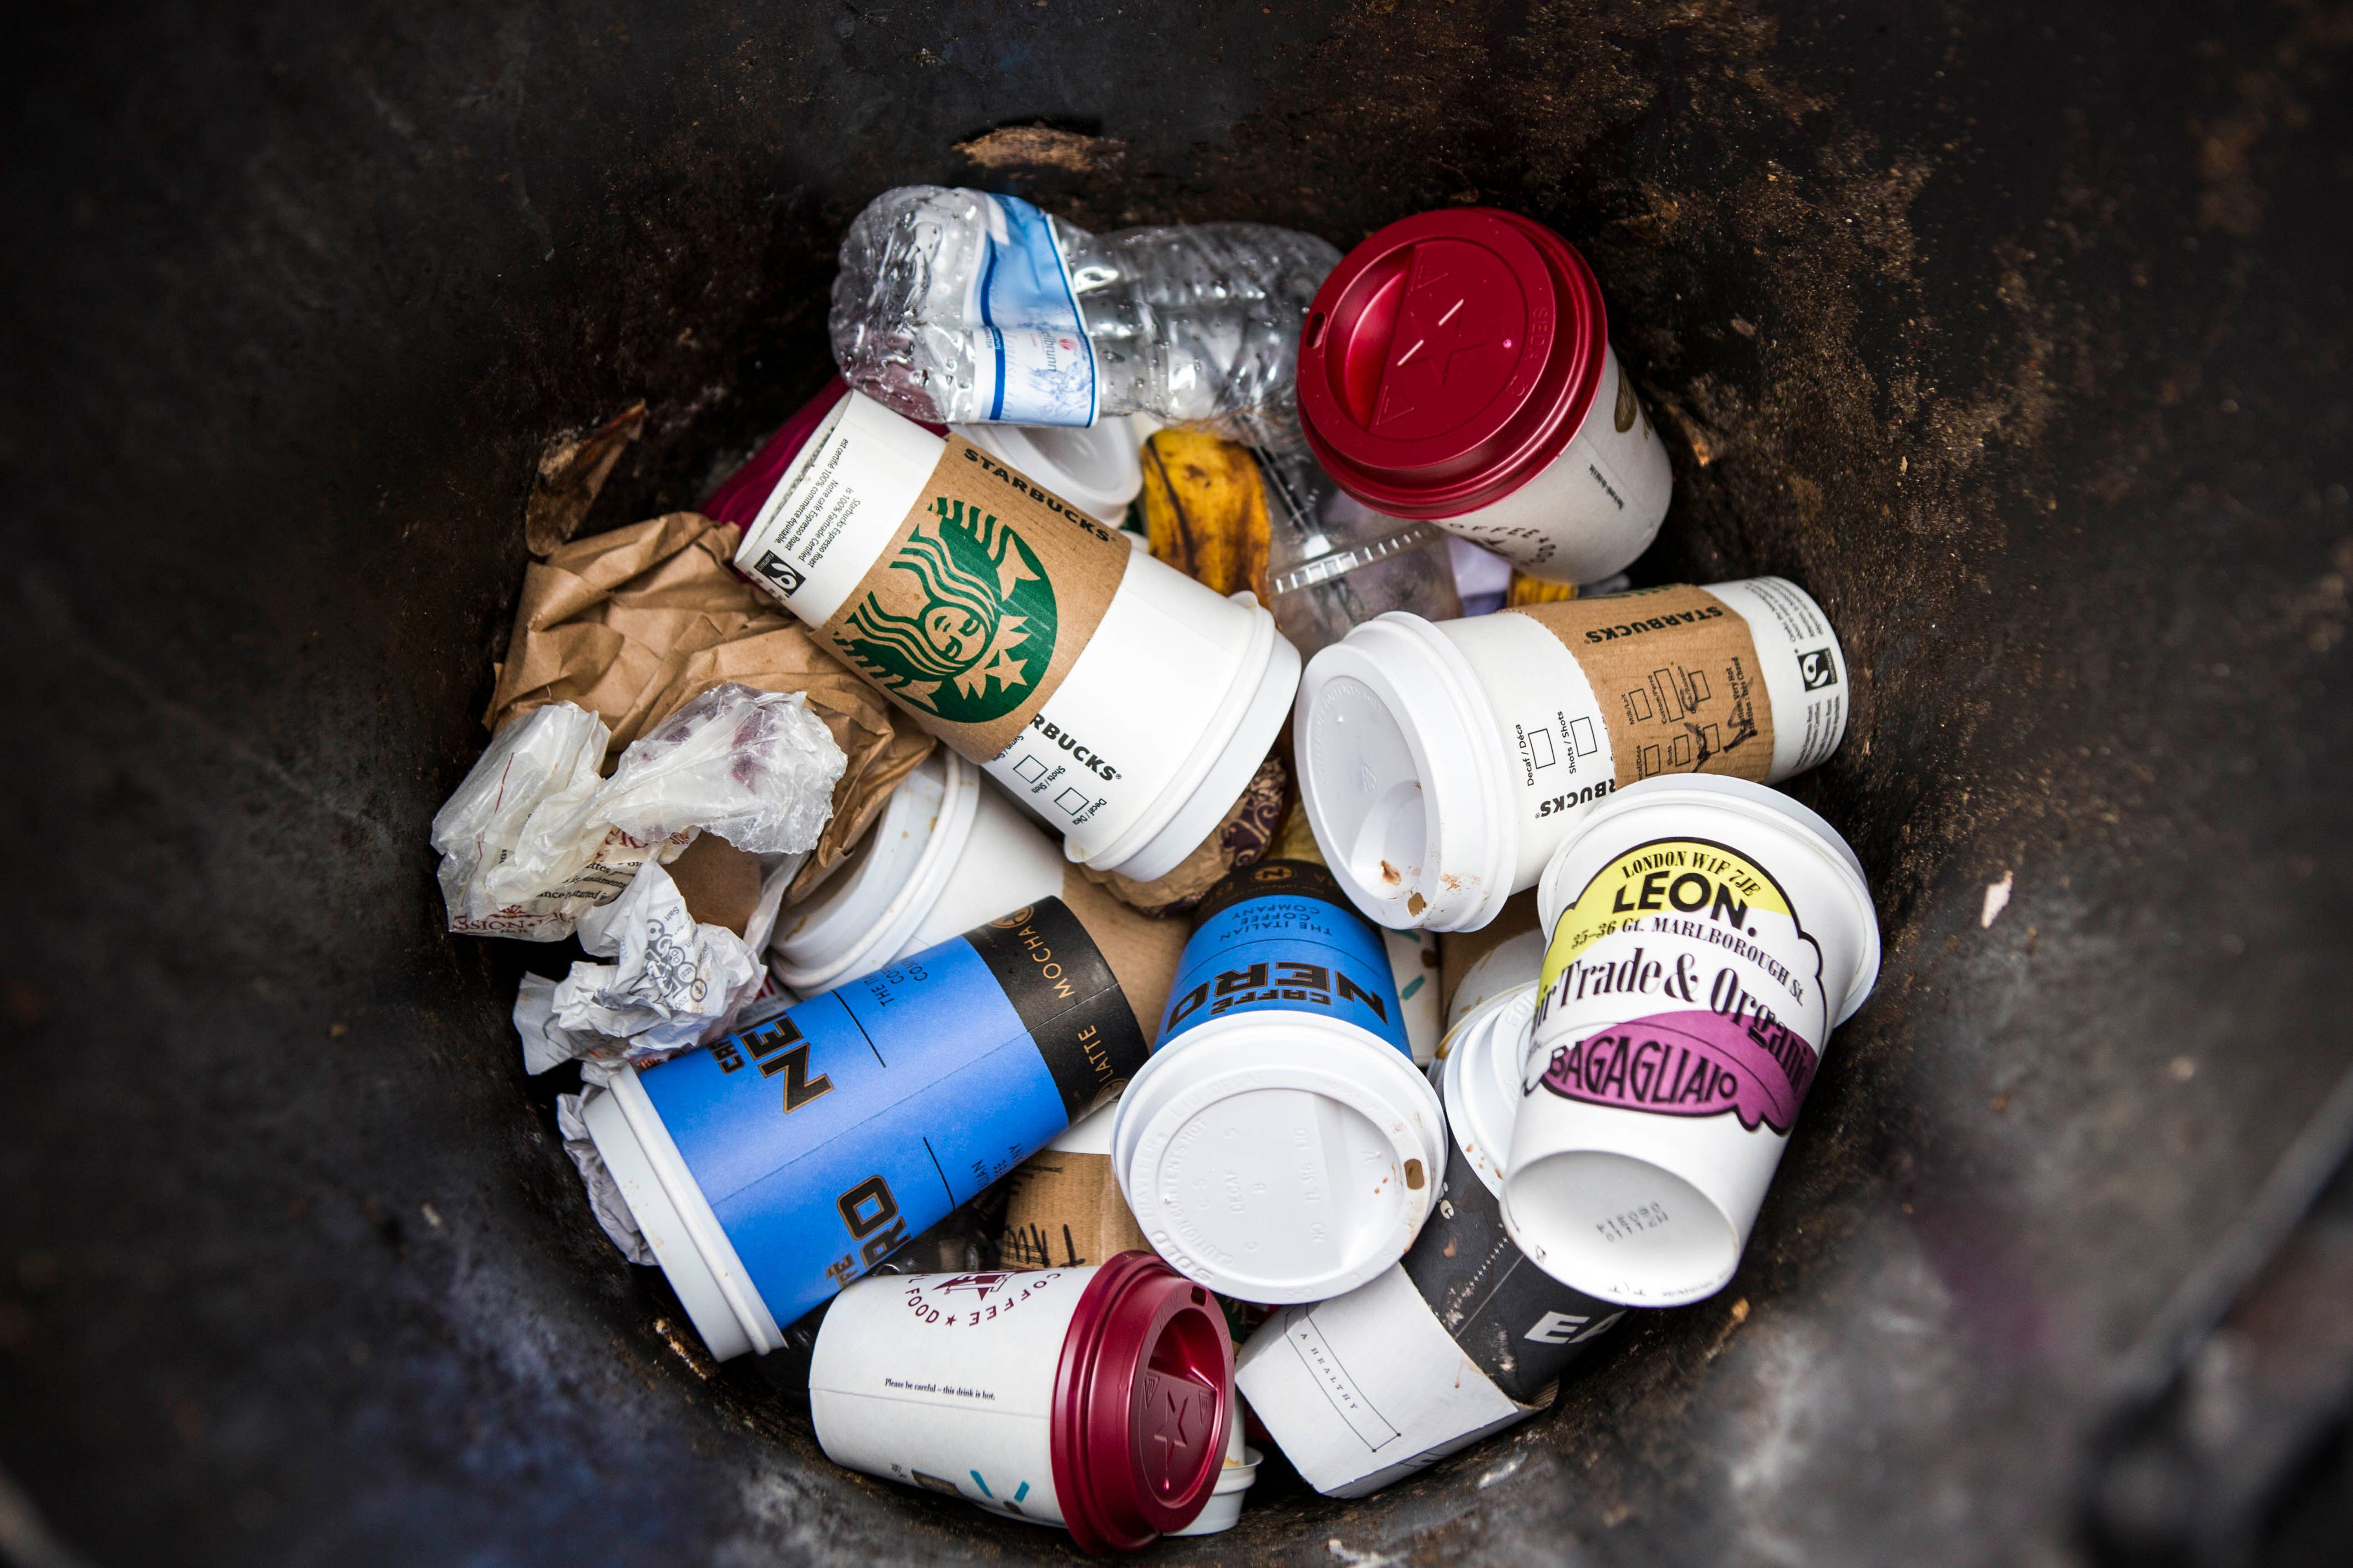 The UK throws away 2.5bn disposable coffee cups every